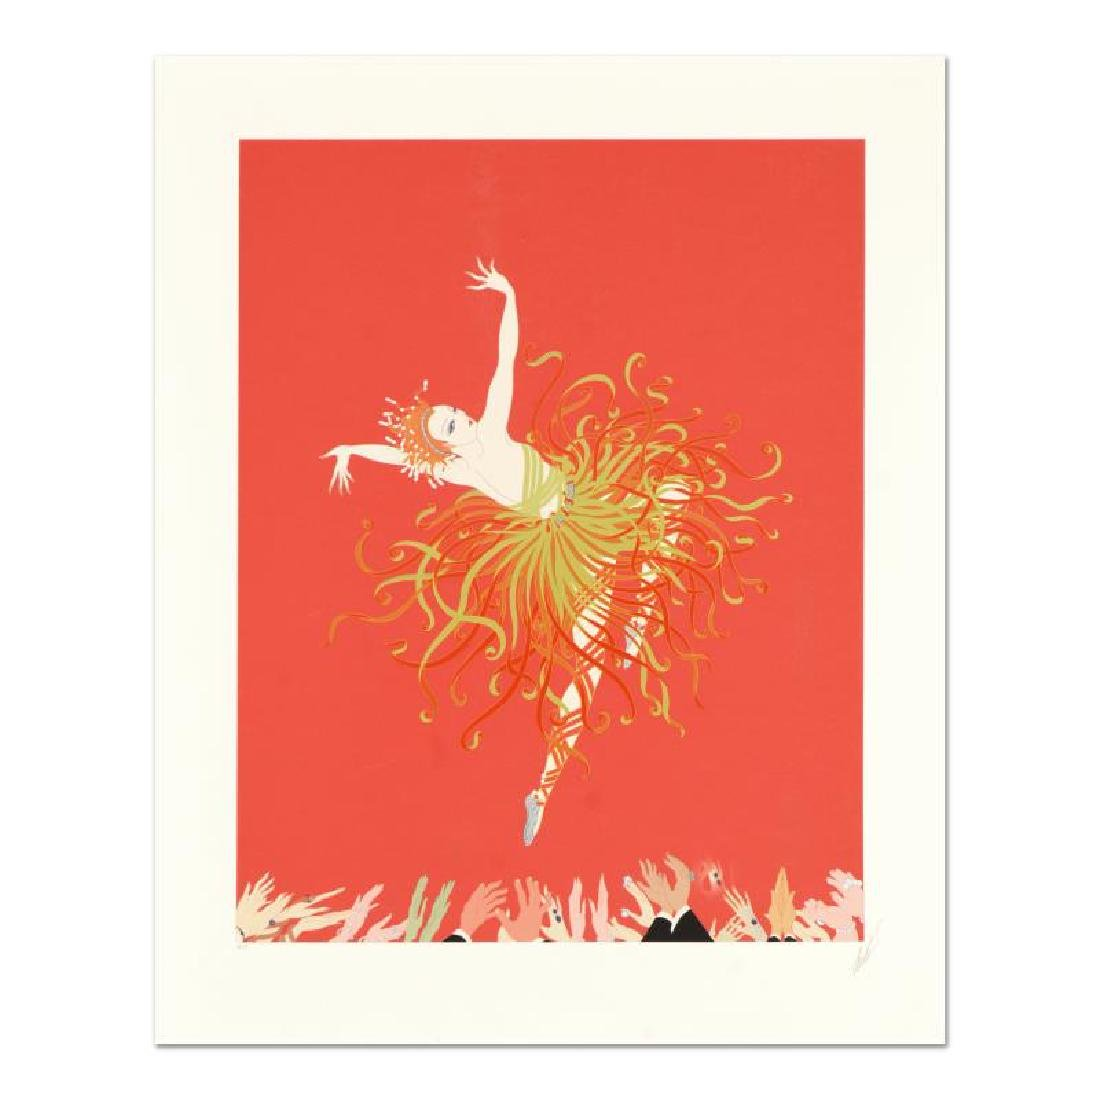 Applause by Erte (1892-1990)